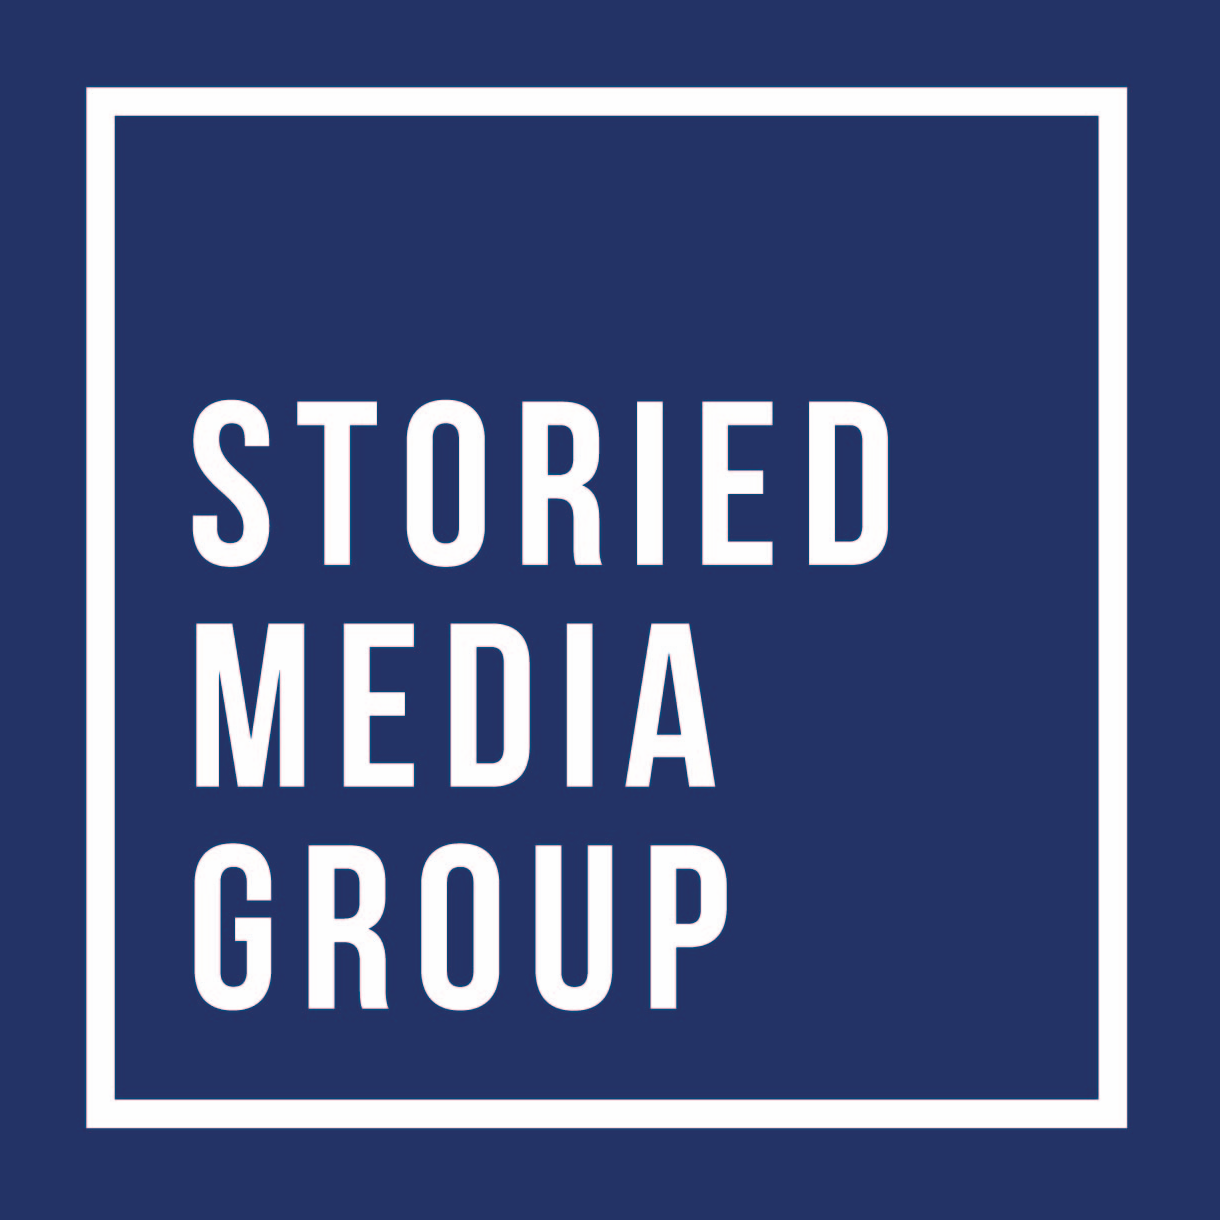 Storied Media Group